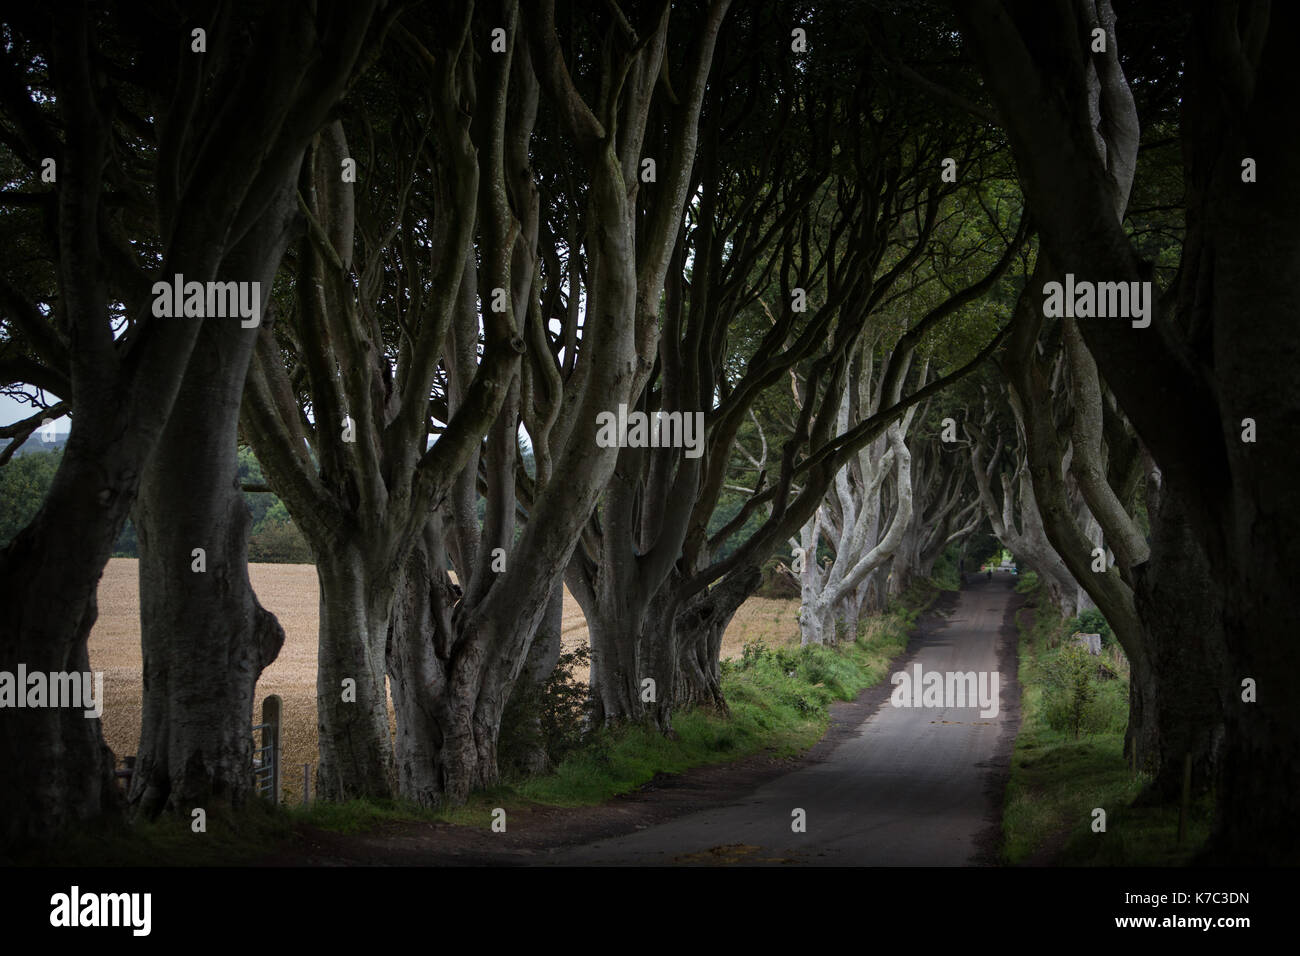 The Dark Hedges, known as the 'King's Road' location in the HBO's TV series Game of Thrones, in Stranocum, in Northern Ireland, on 15 September 2017. - Stock Image